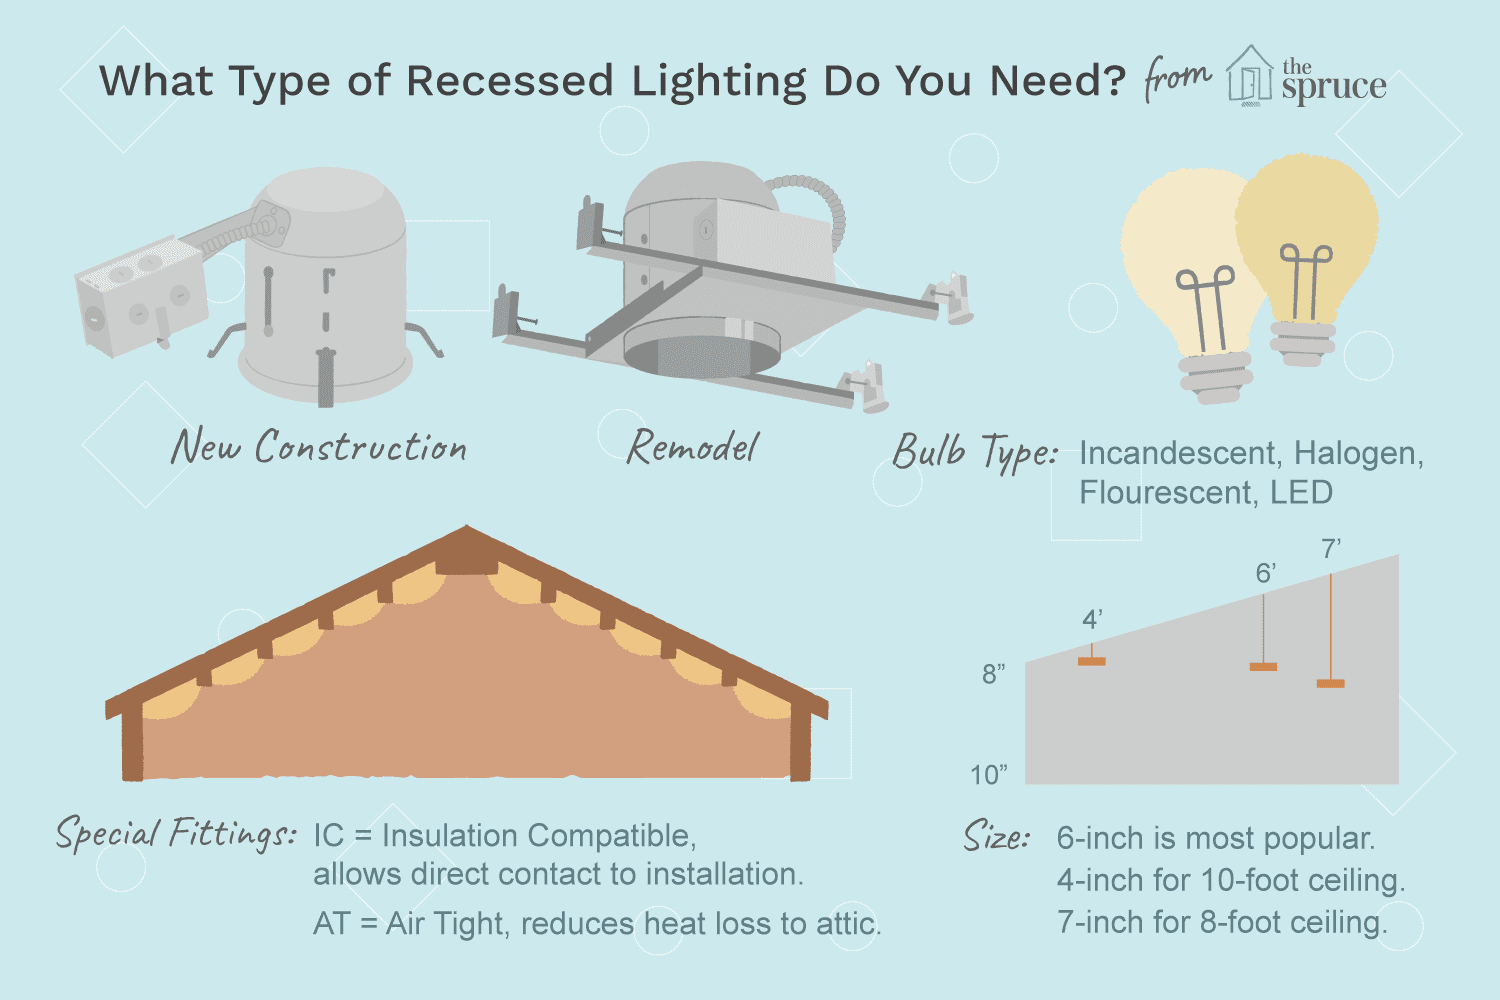 What to Know Before You Buy Recessed Lights  Bulb Ballast Wiring Diagram For Tree Bulbs on 4 pin ballast wiring diagram, two lamp ballast wire diagram, ballast replacement diagram, 4 bulb ballast wiring two, fluorescent fixtures t5 circuit diagram, 2 bulb ballast wiring diagram,